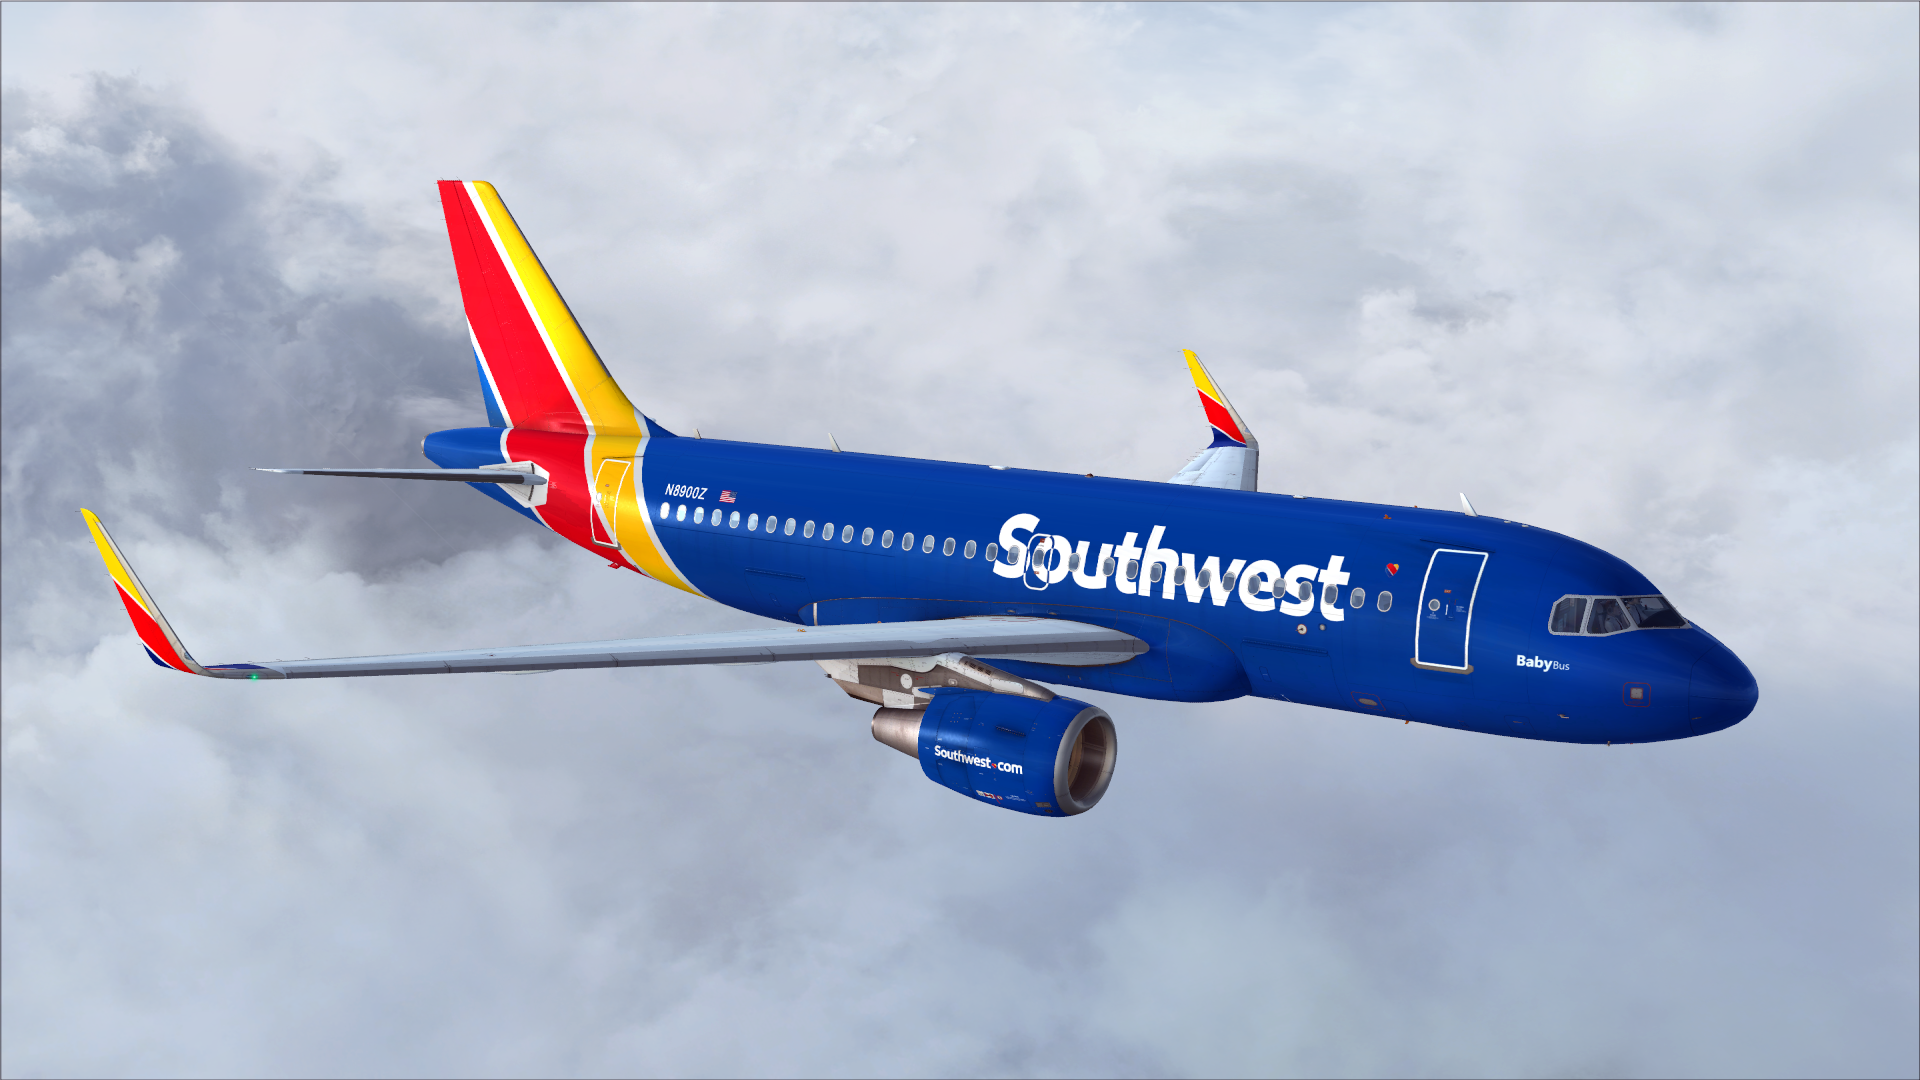 Southwest Airlines A320 There's got to be a southwest livery for 320 ...